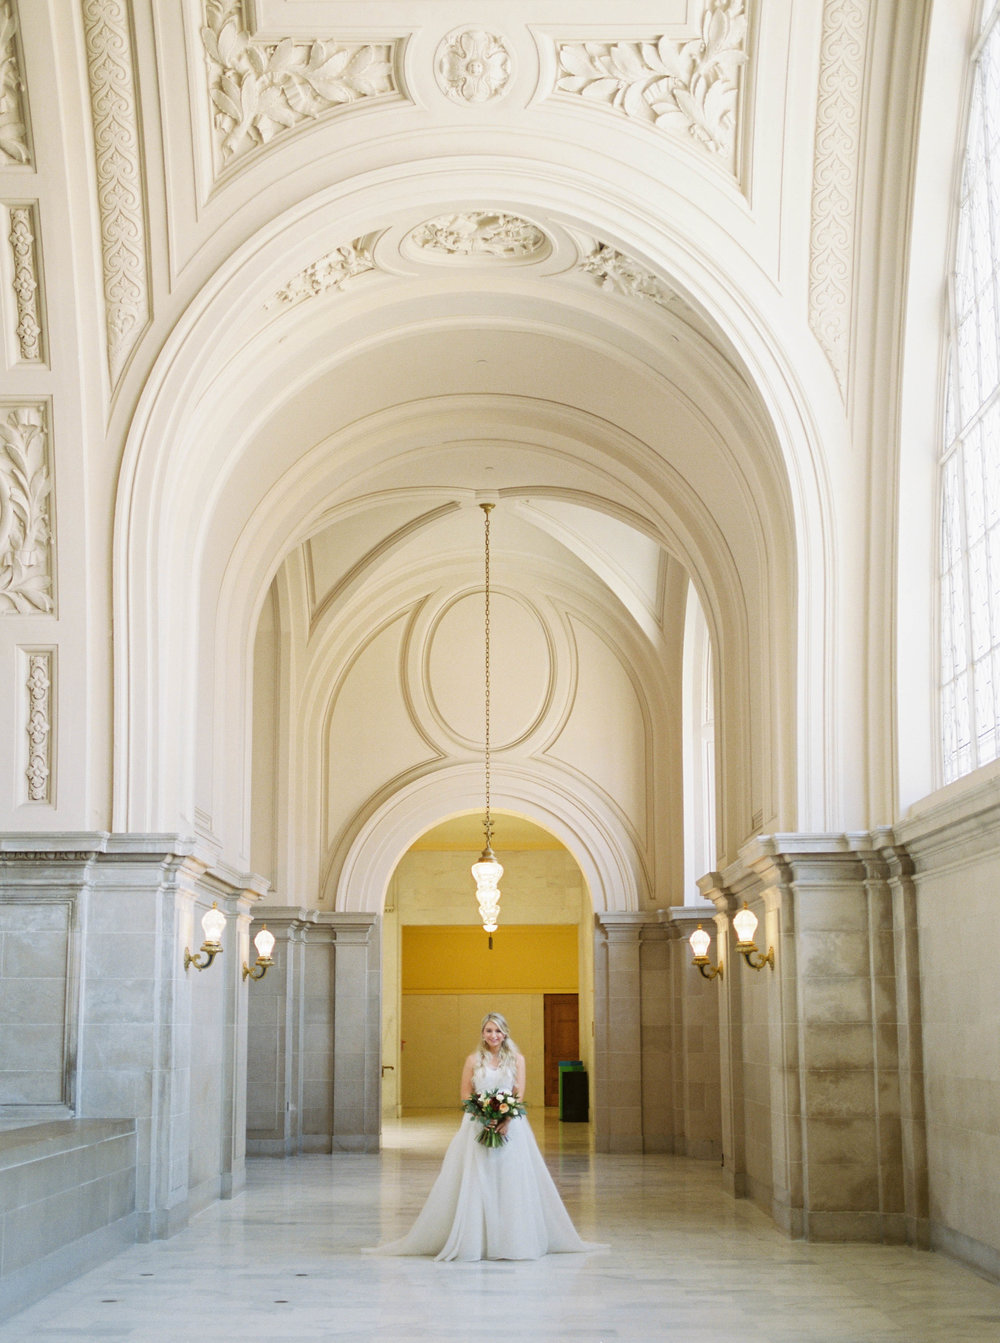 DennisRoyCoronel_Photography_SanFranciscoCityHall_Wedding-15.jpg